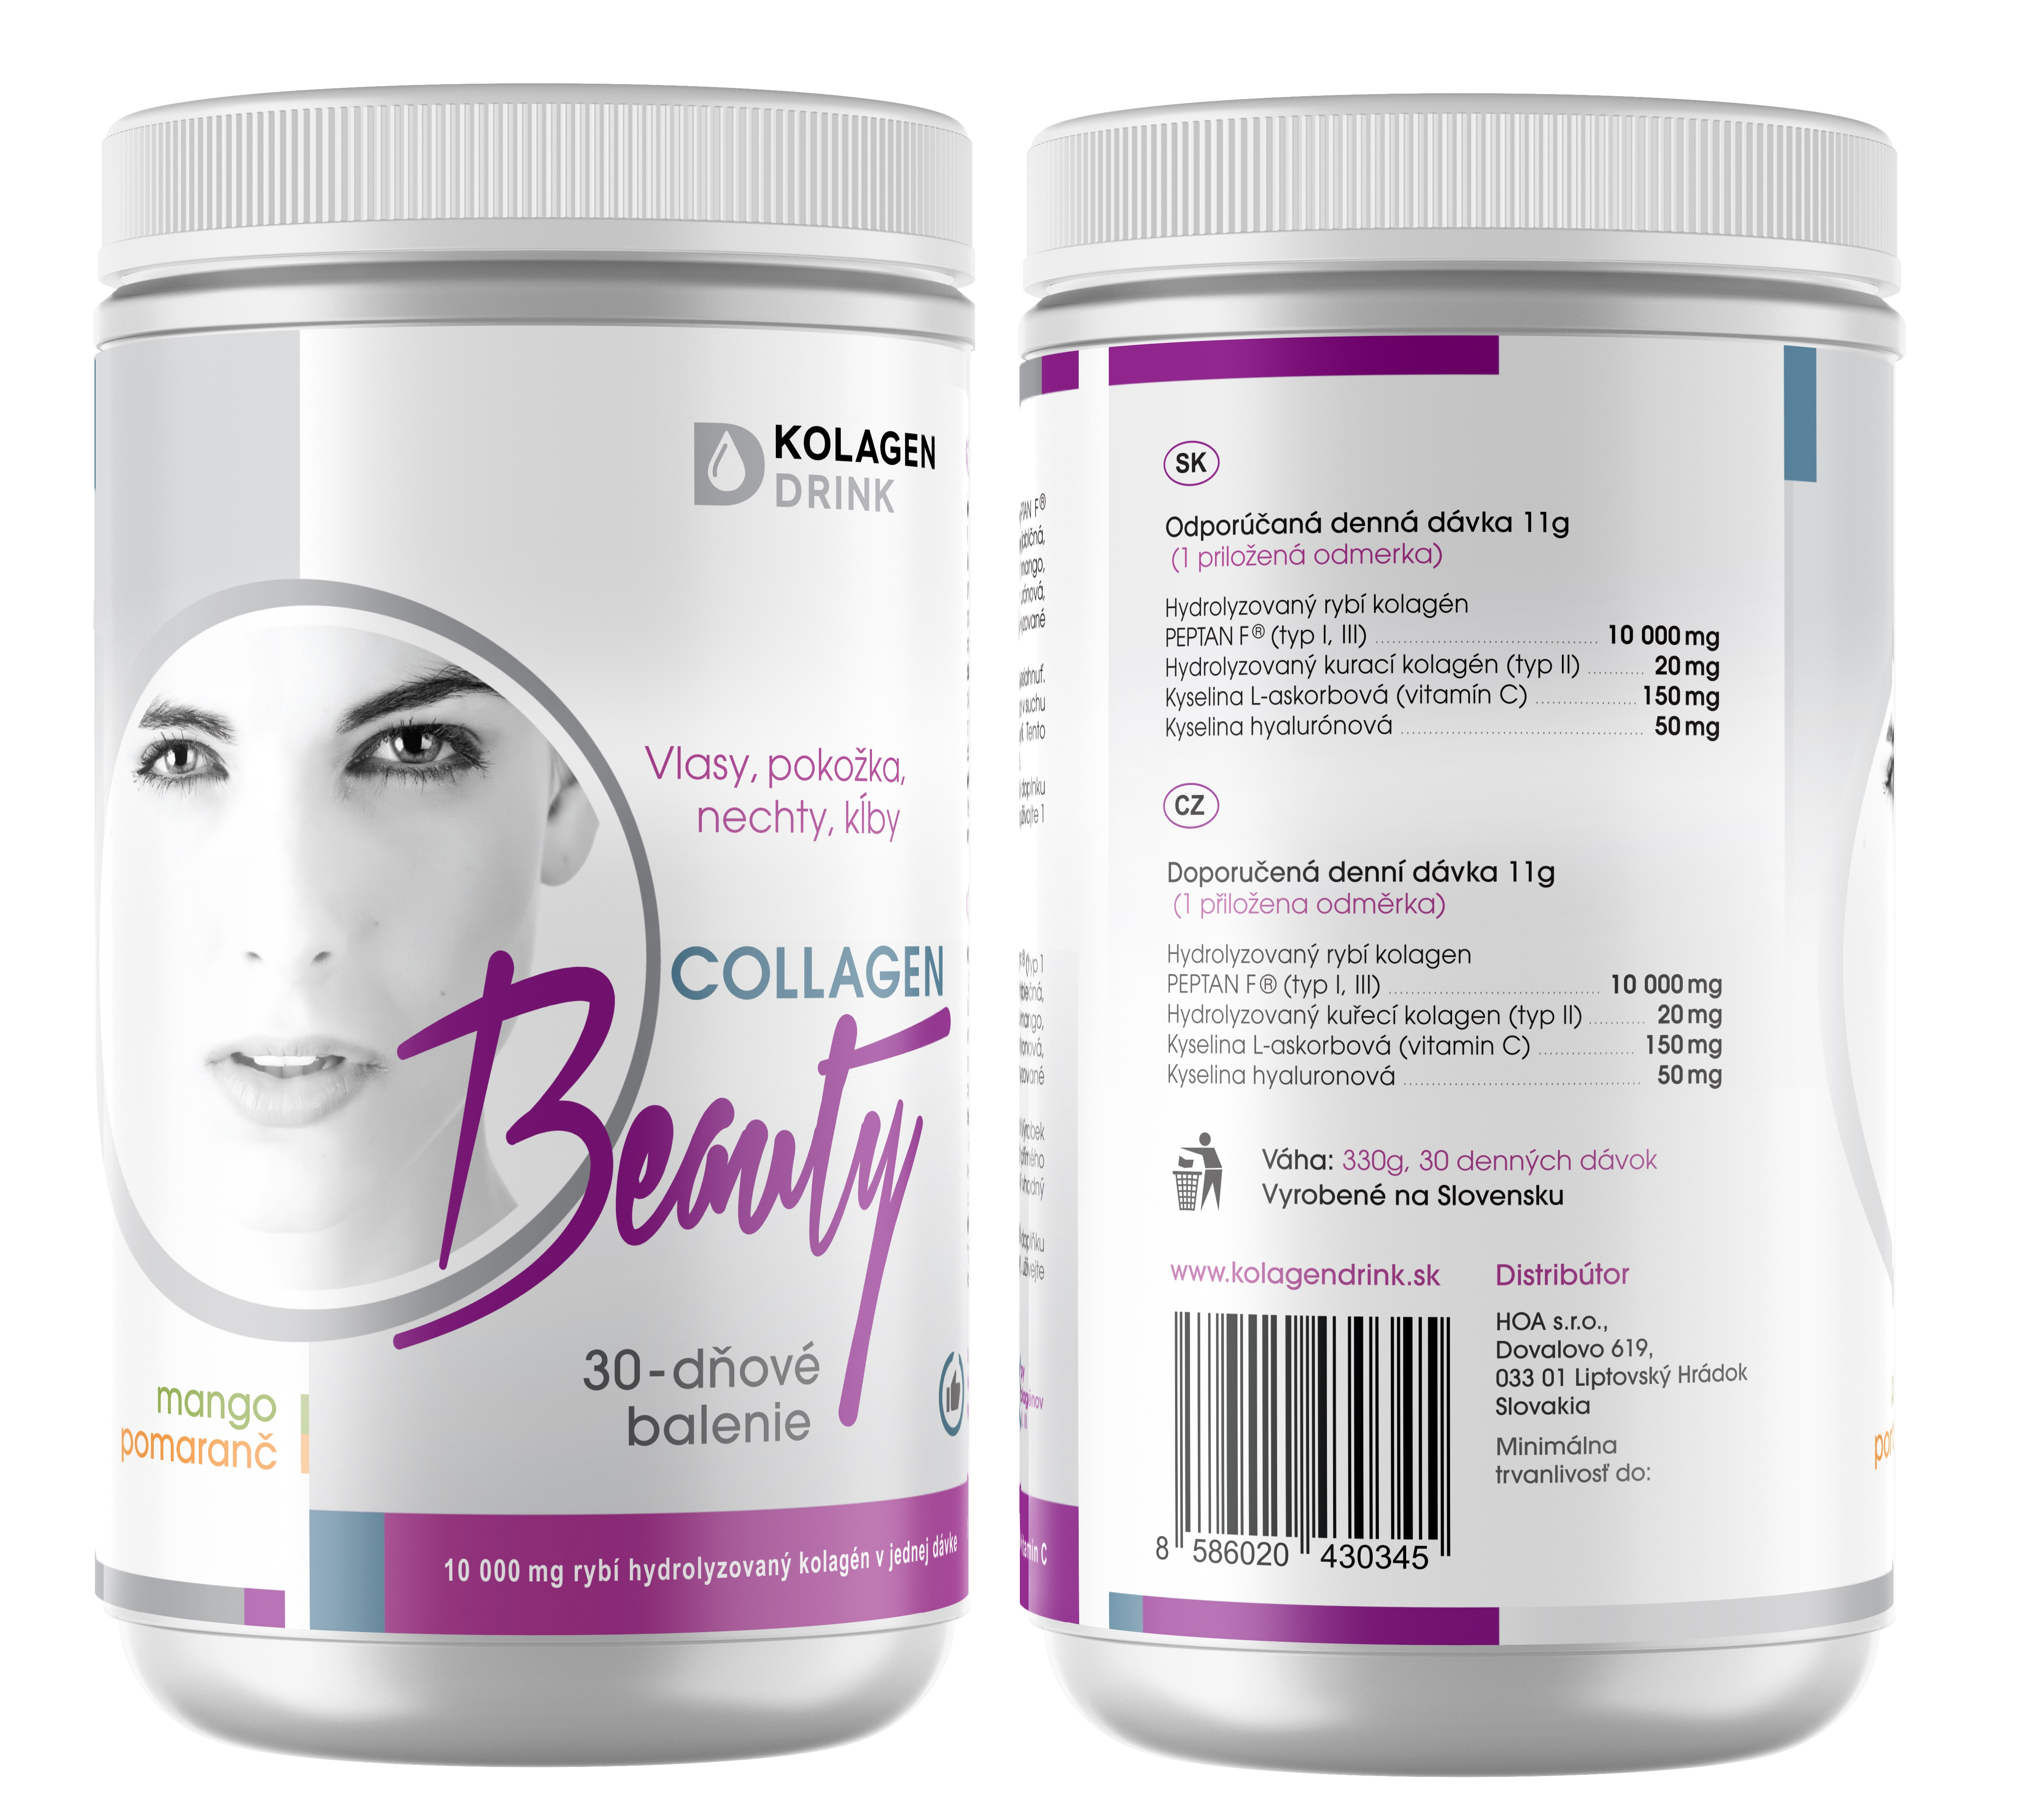 kolagenDrink Beauty collagen